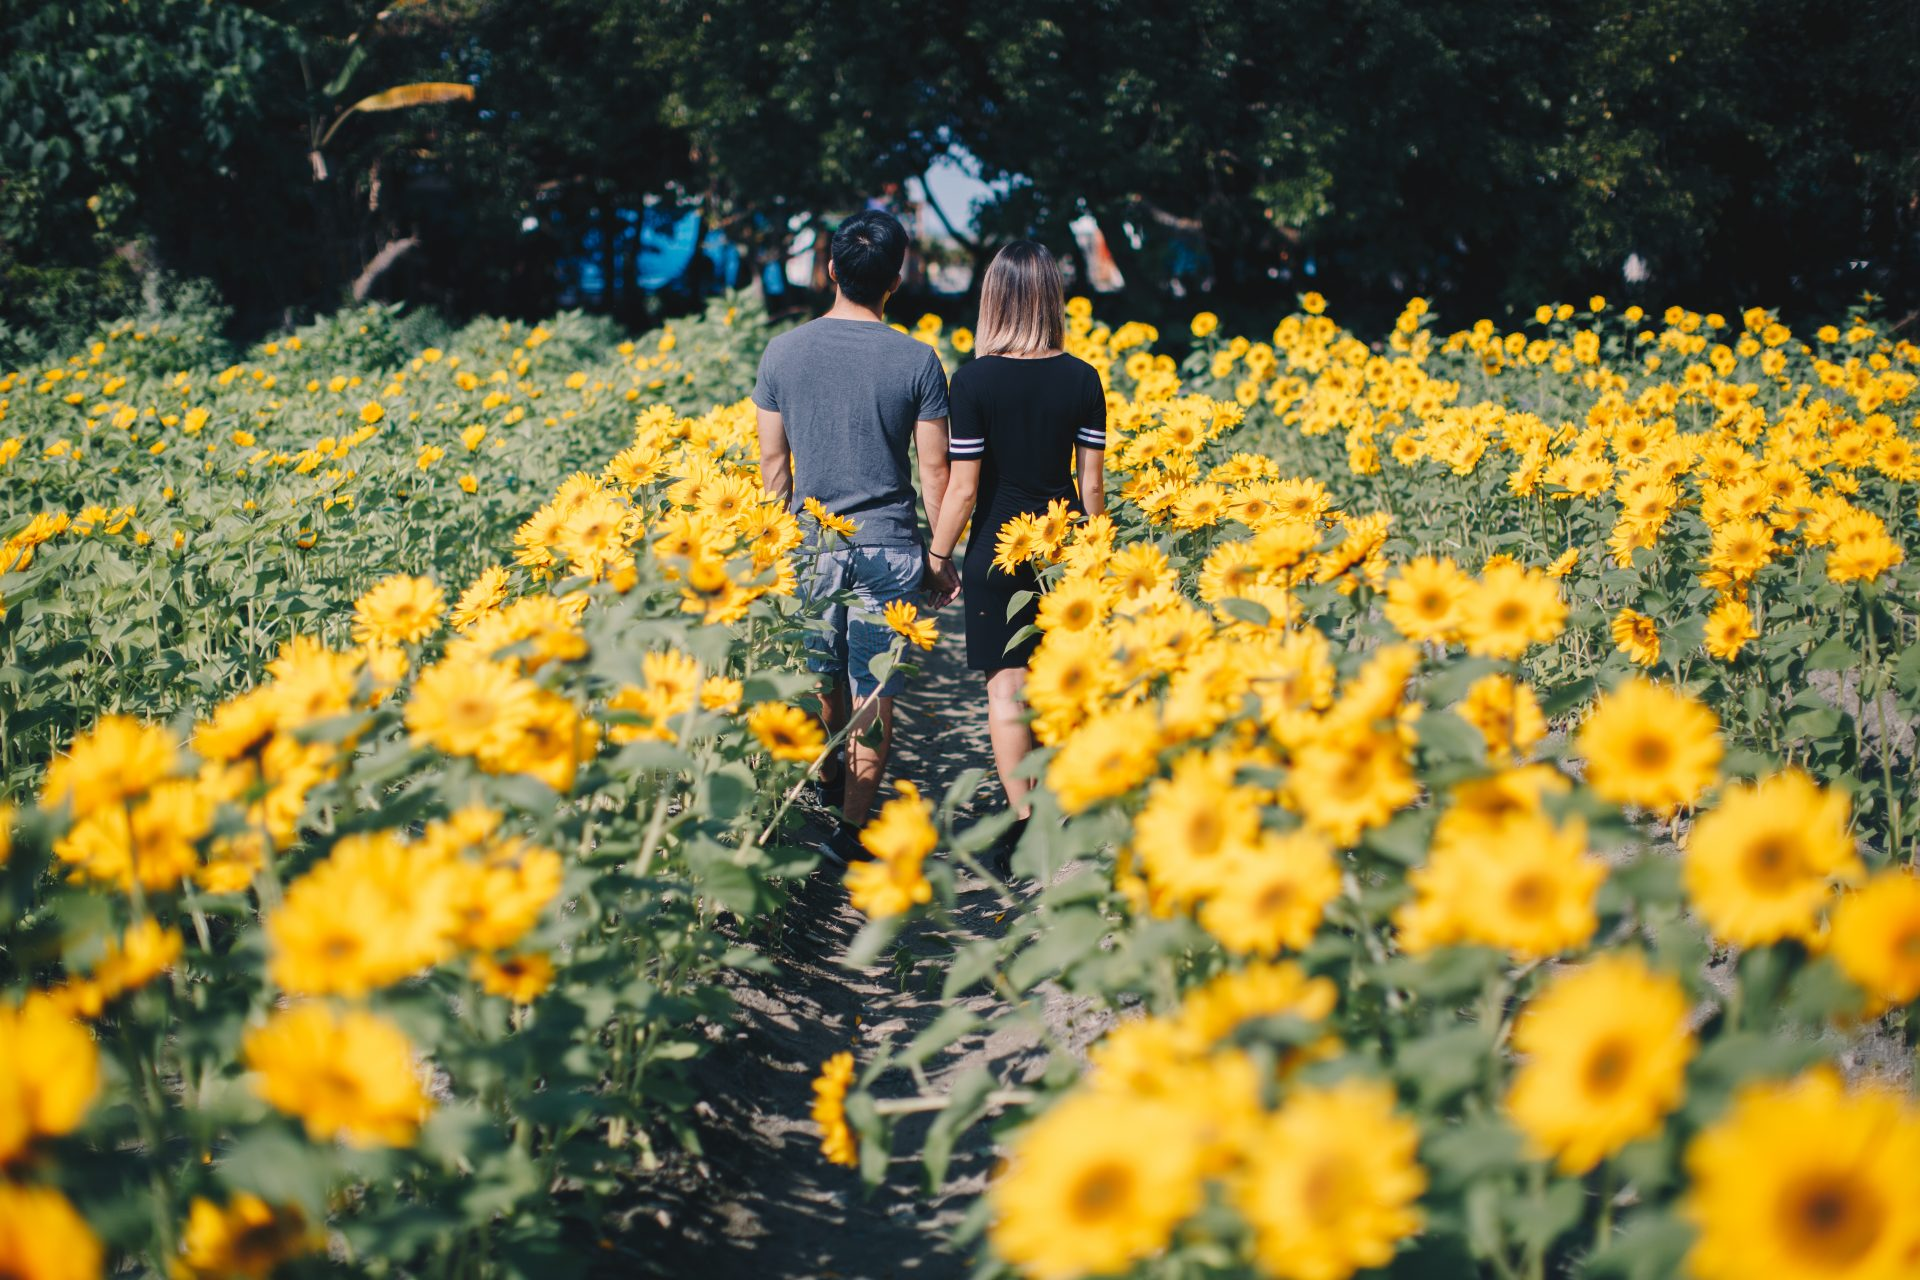 Flower field trip in pingtung taiwan where you can then transfer to take a regular train to pingtung there you can find plenty of tour buses or a cheap cab to take you to the exhibition izmirmasajfo